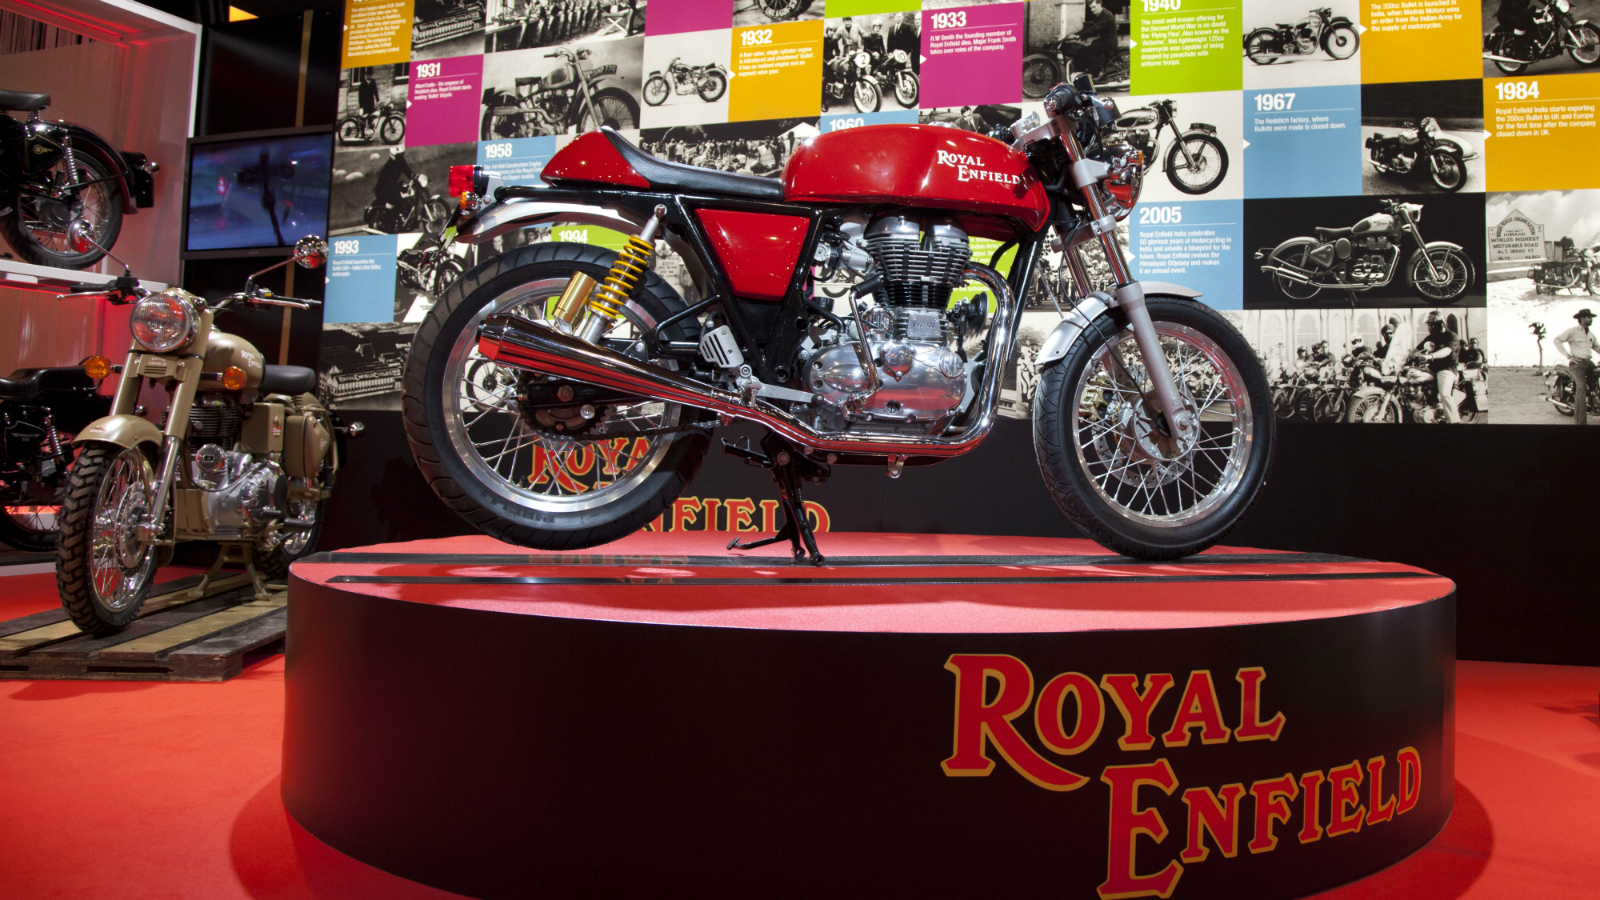 The Royal Enfield Continental GT 535 EFI Cafe Racer concept motorbike is seen on display during the Brussels Motor Show at the Expo Center in Brussels on Thursday, Jan. 10, 2013. The Brussels Motor Show is a yearly event in which major automobile manufacturers can show off their new models.